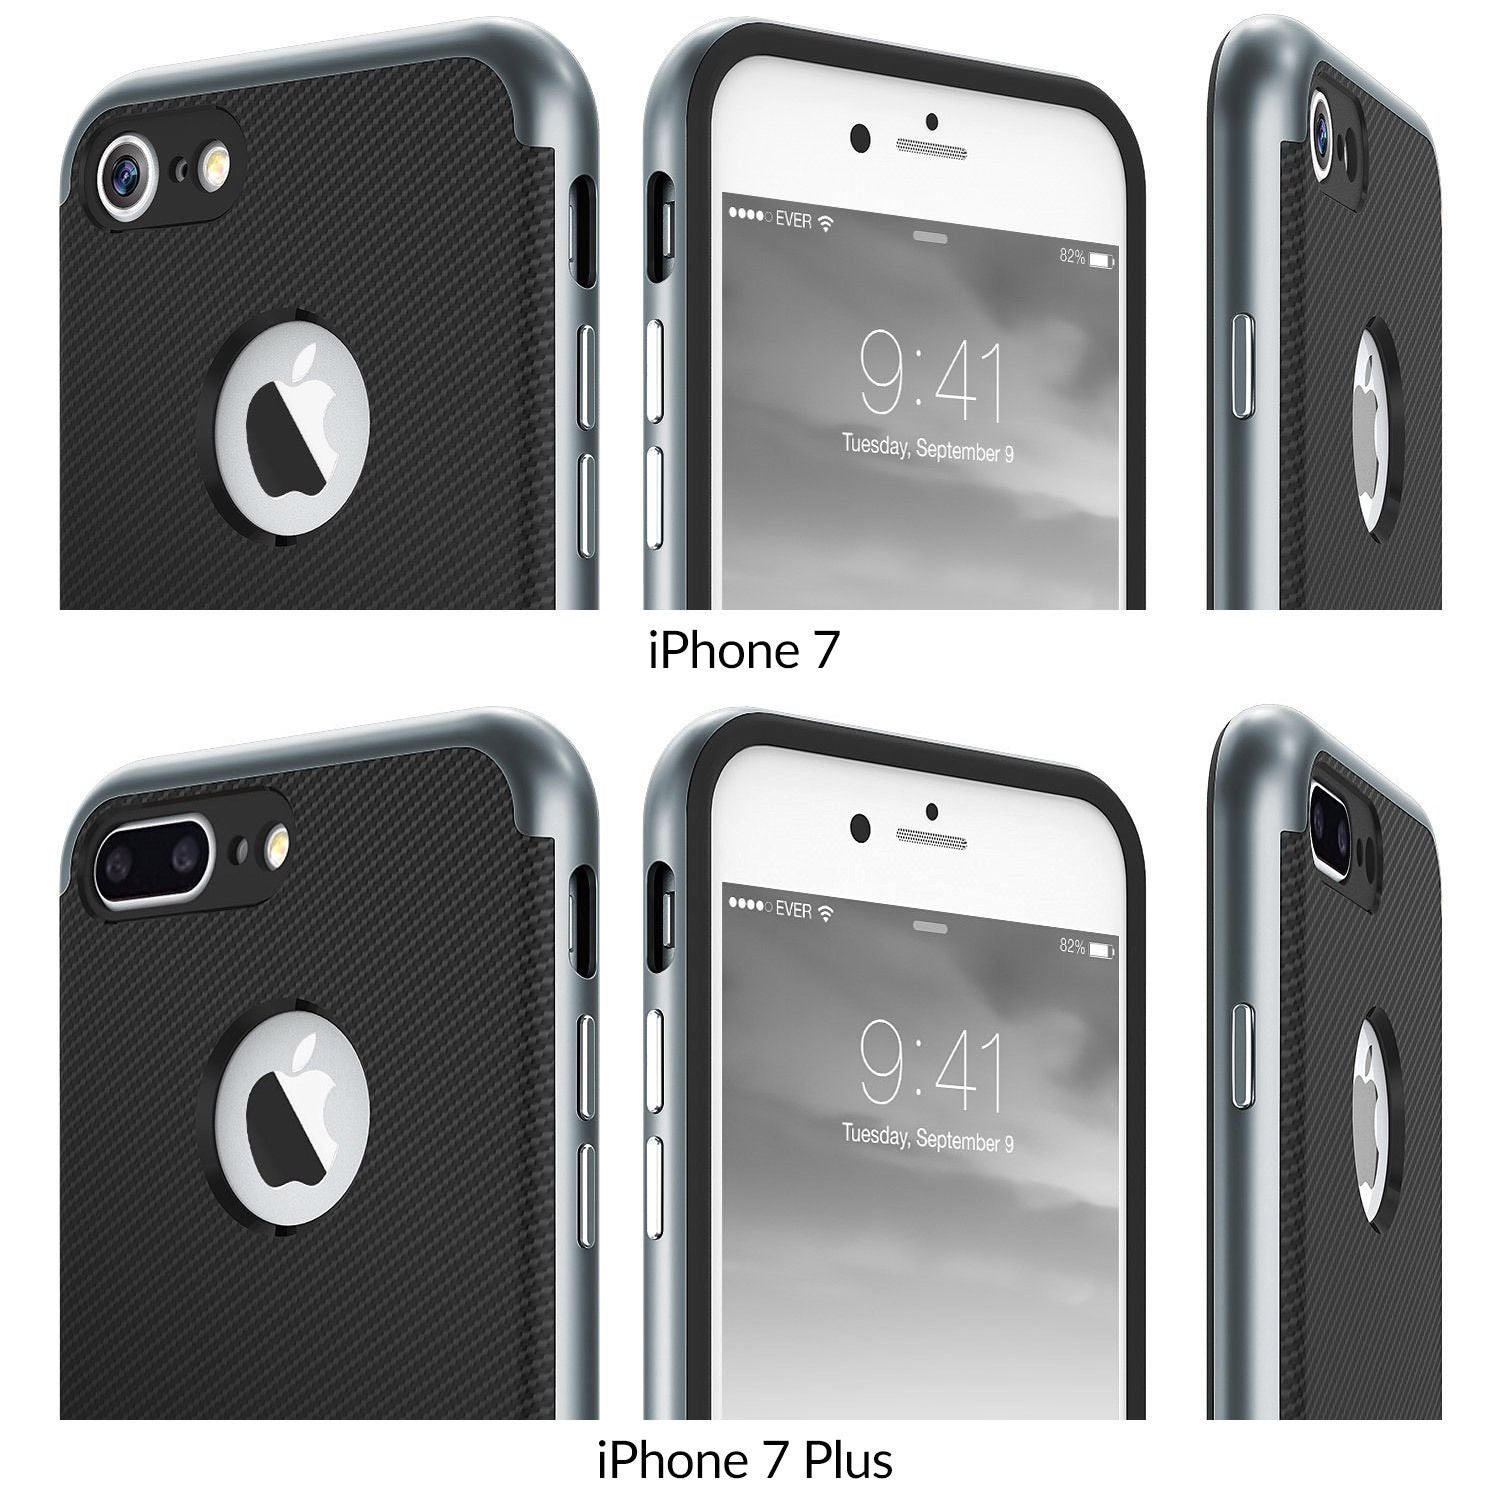 PREMIUM BUMPER Dual Layer Premium Case Slim Fit For iPhone 7 / 7 Plus